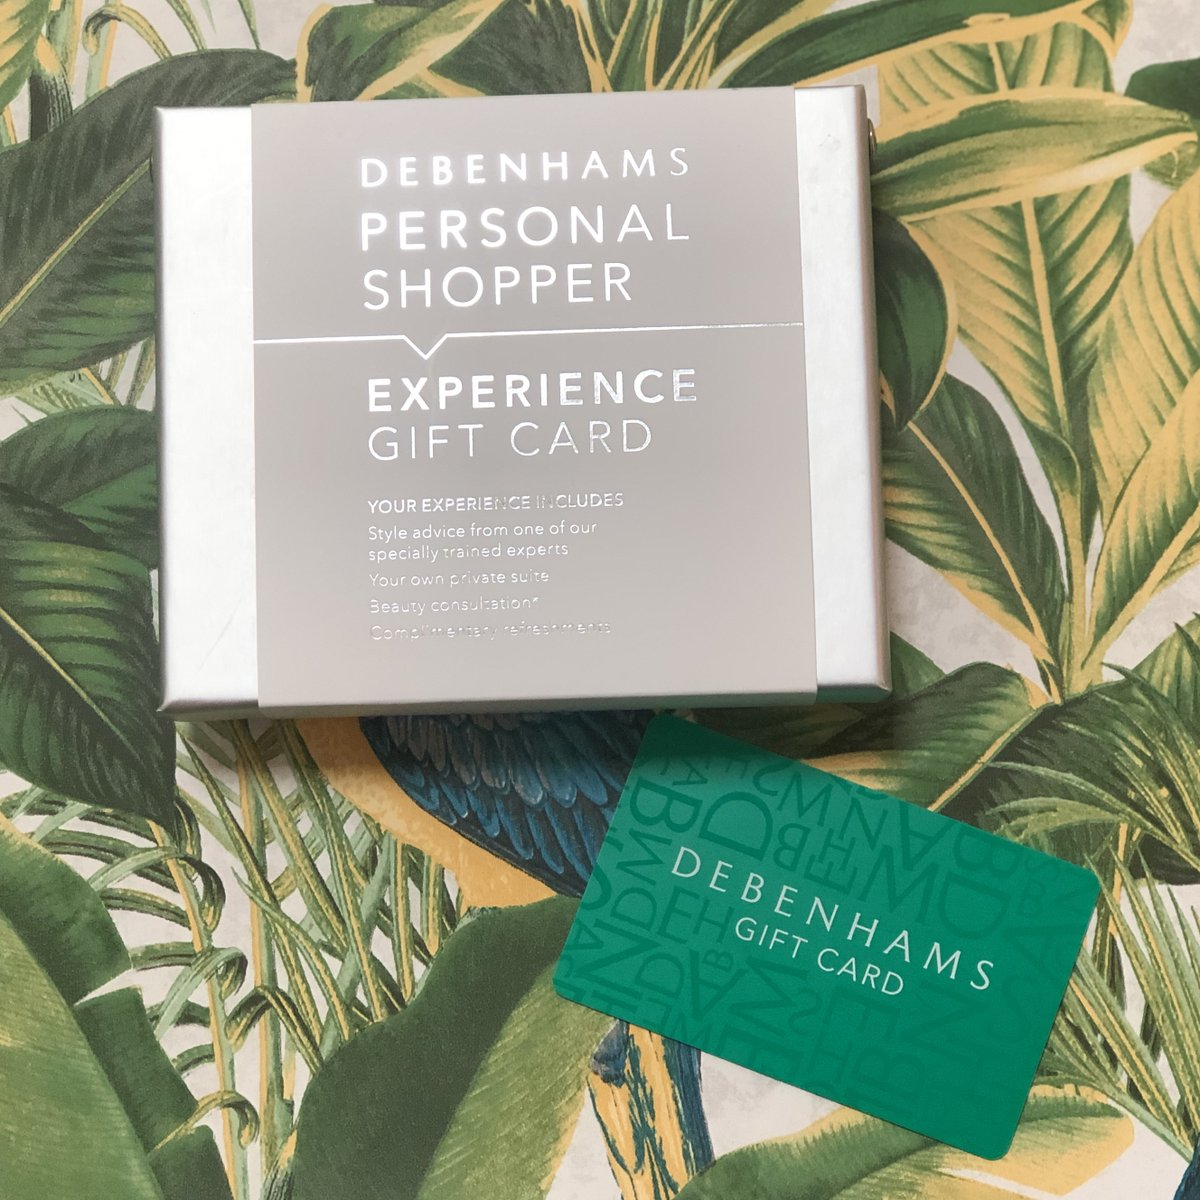 #FreebieFriday #Win a £60 @Debenhams voucher and a Personal Shopper experience to help you find your perfect outfit! Follow us, like & RT to enter, ends 8am 27/01/20. You can also enter on Facebook & Instagram. <br>http://pic.twitter.com/xCnIzKSkyg